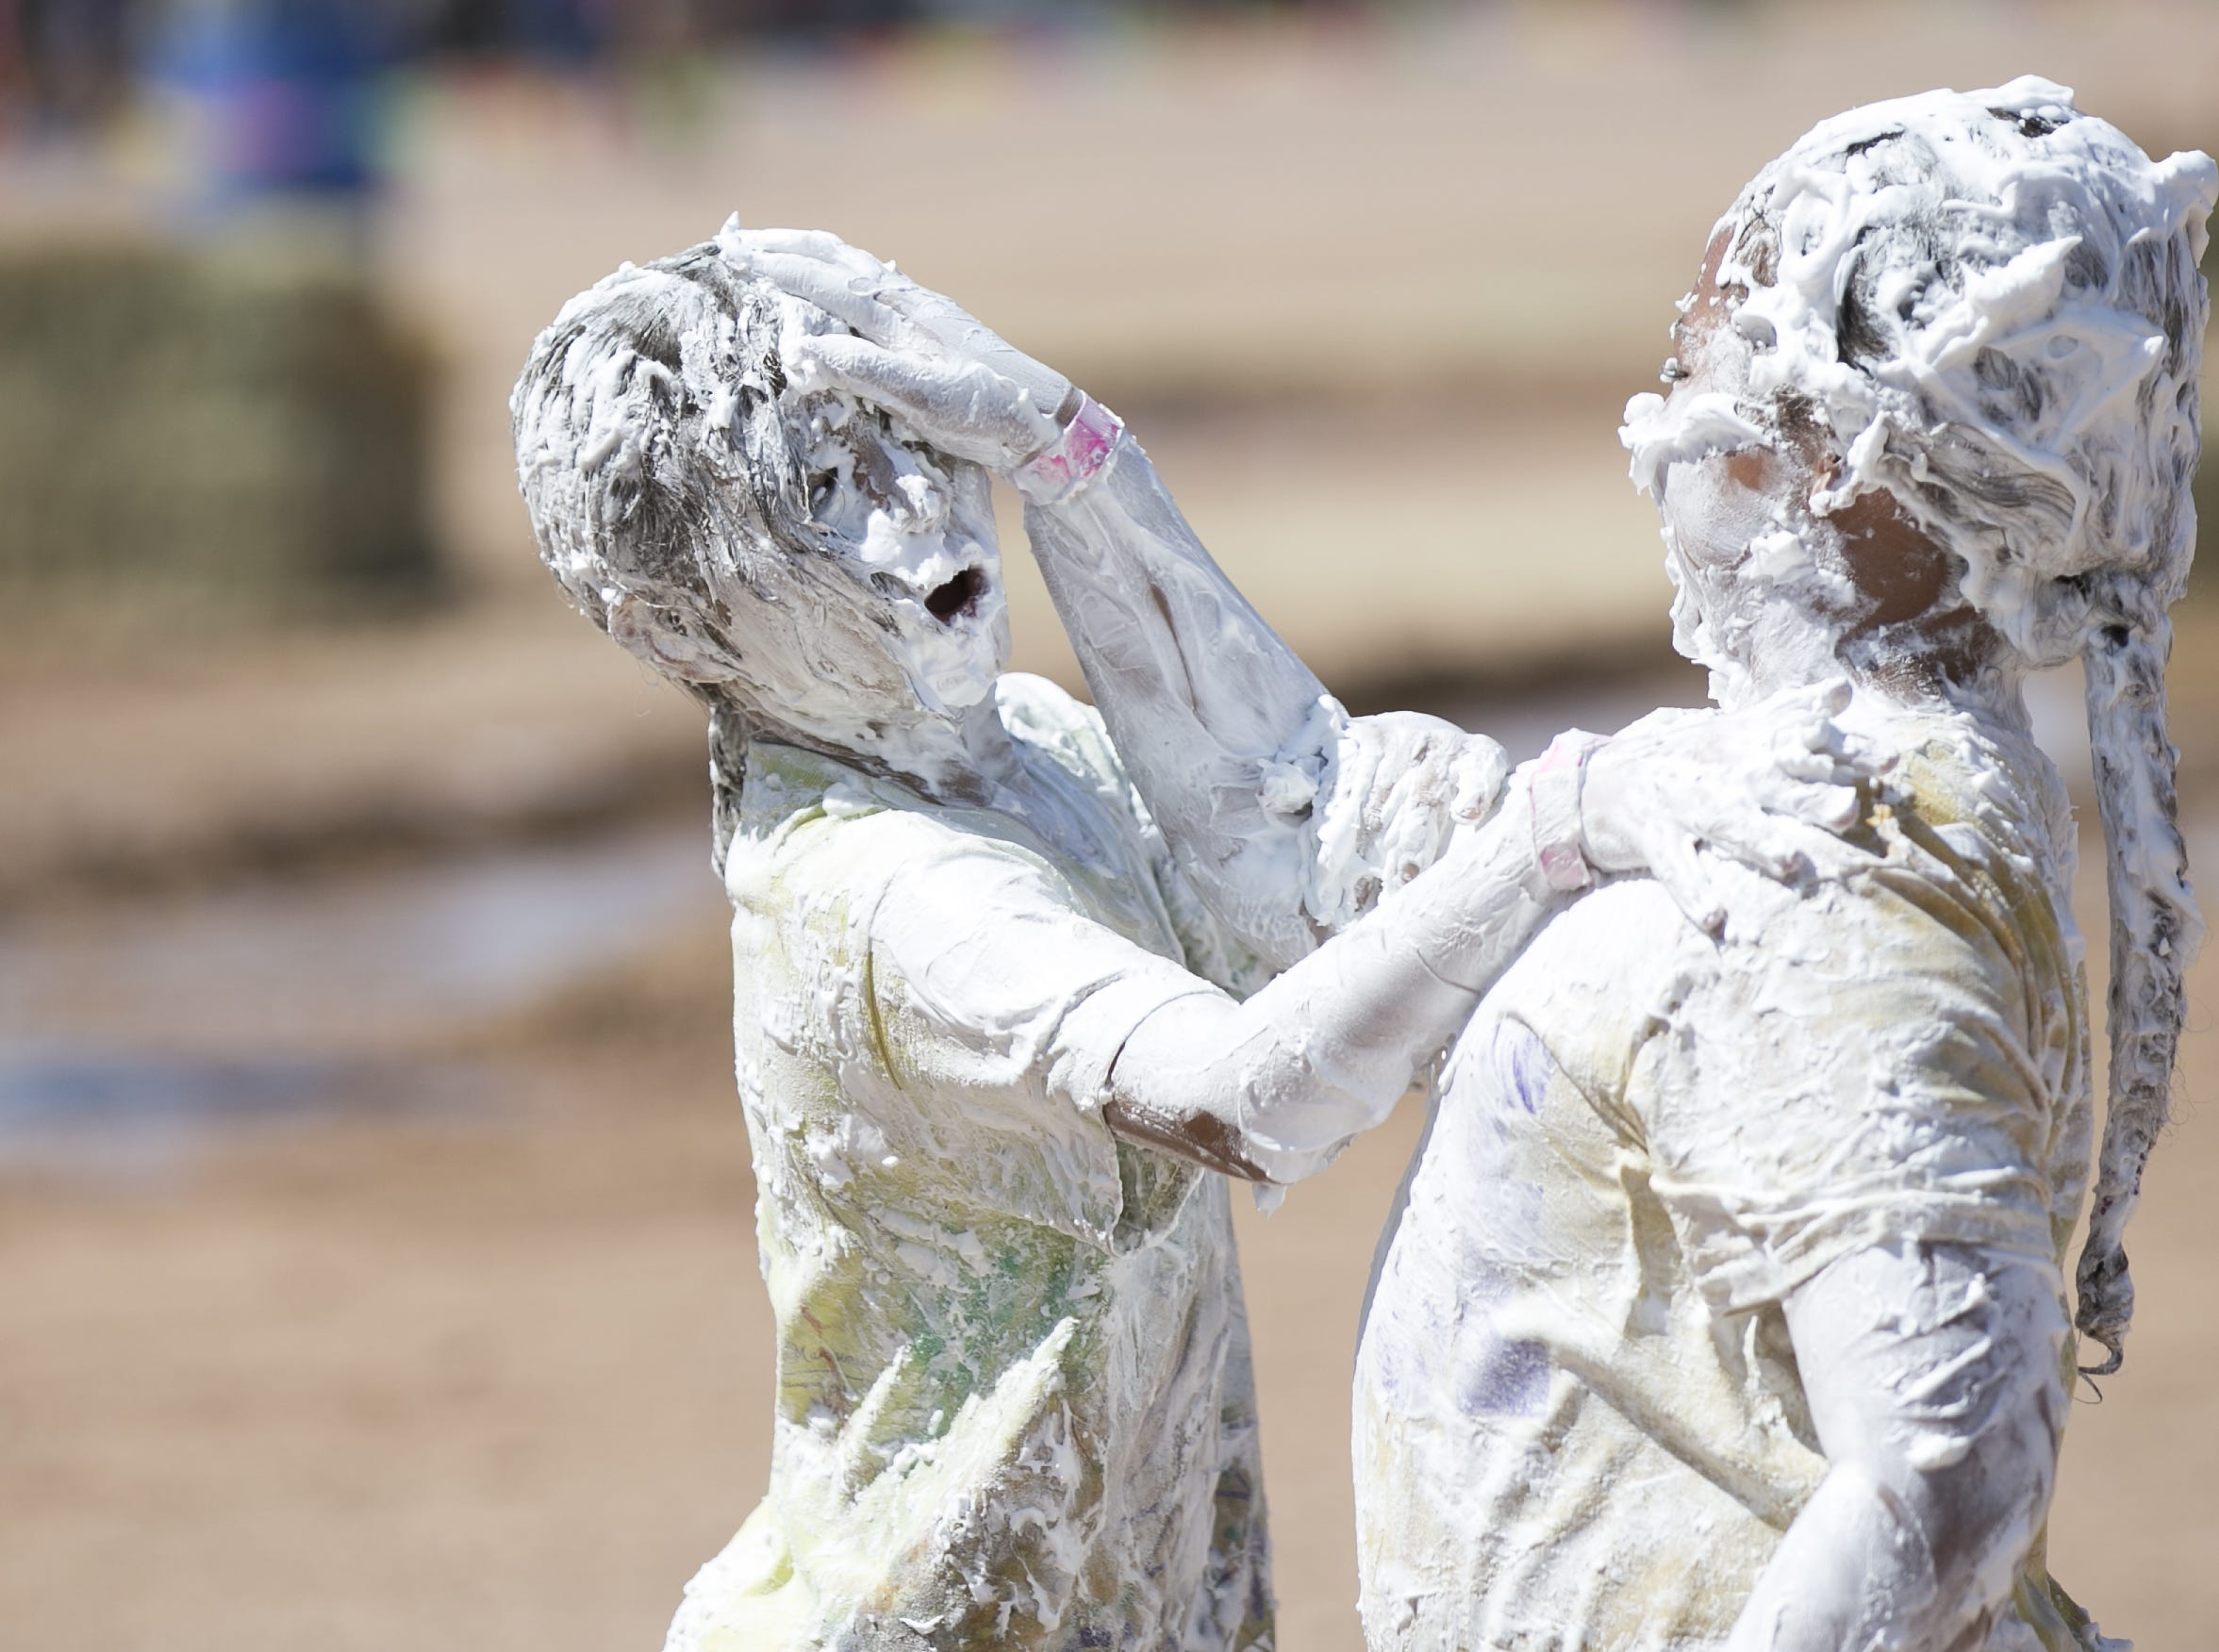 8-year-old Olivia Dlott (left) and 8-year-old Mia Hall (right) rub shaving cream on each other's faces at the third annual Messy Fest in Queen Creek on Saturday, Sept. 15, 2018.